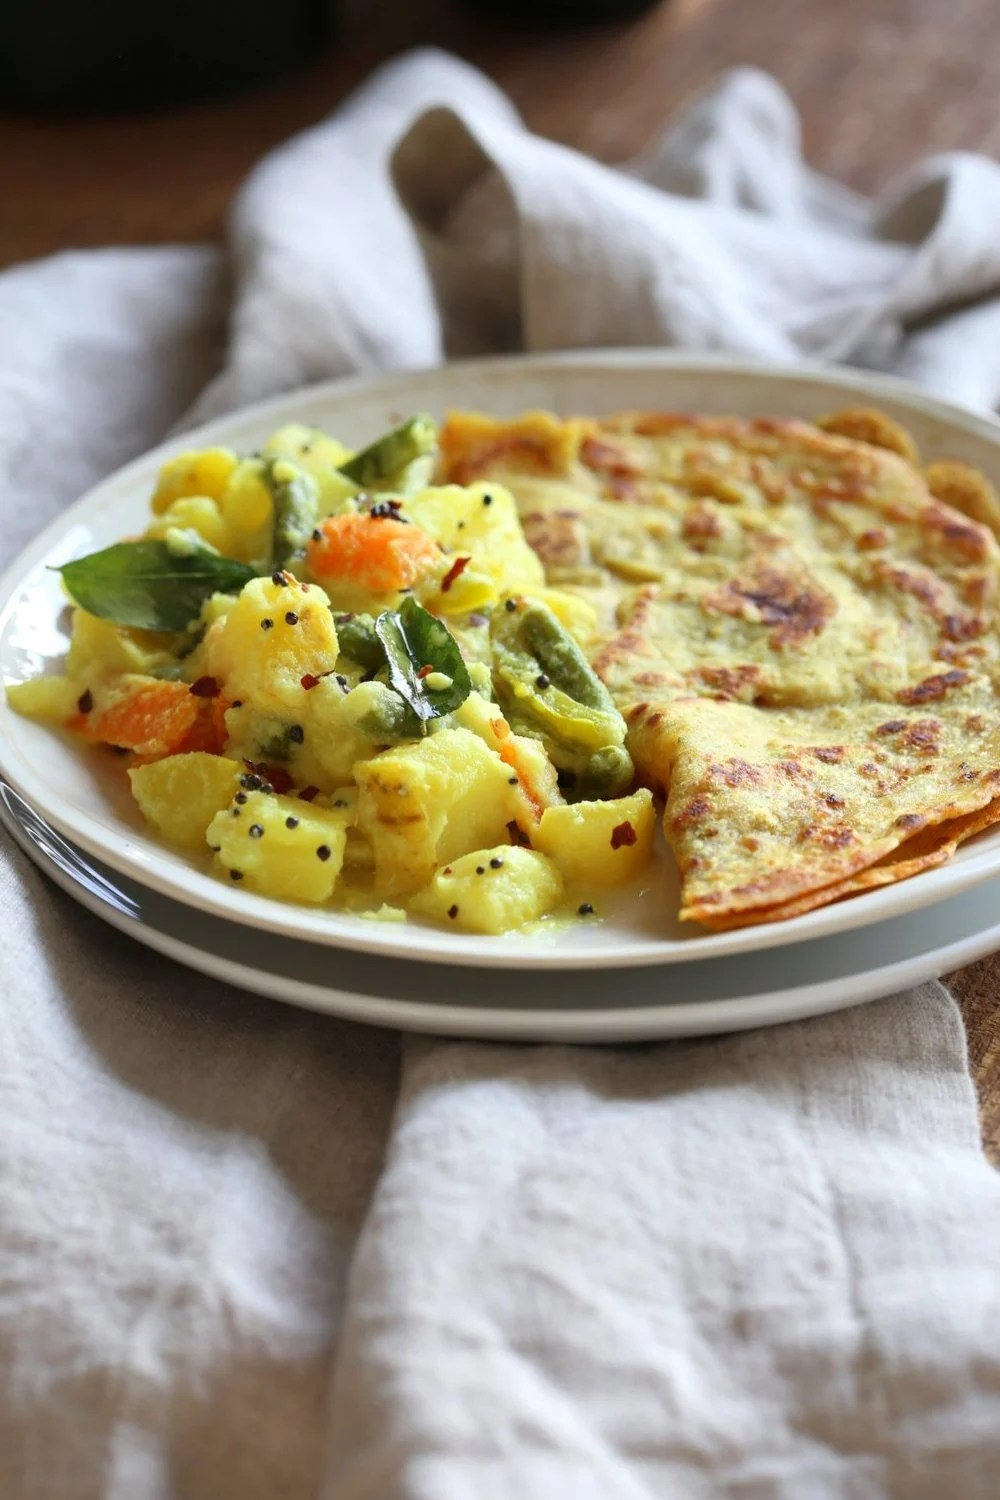 Avial - South Indian Veggie Coconut Curry. Seasonal Vegetables in easy spiced coconut sauce. Serve over rice, flatbread or dosa crepes. #Vegan #Indian #Glutenfree #Soyfree #Recipe #VEGANRICHA